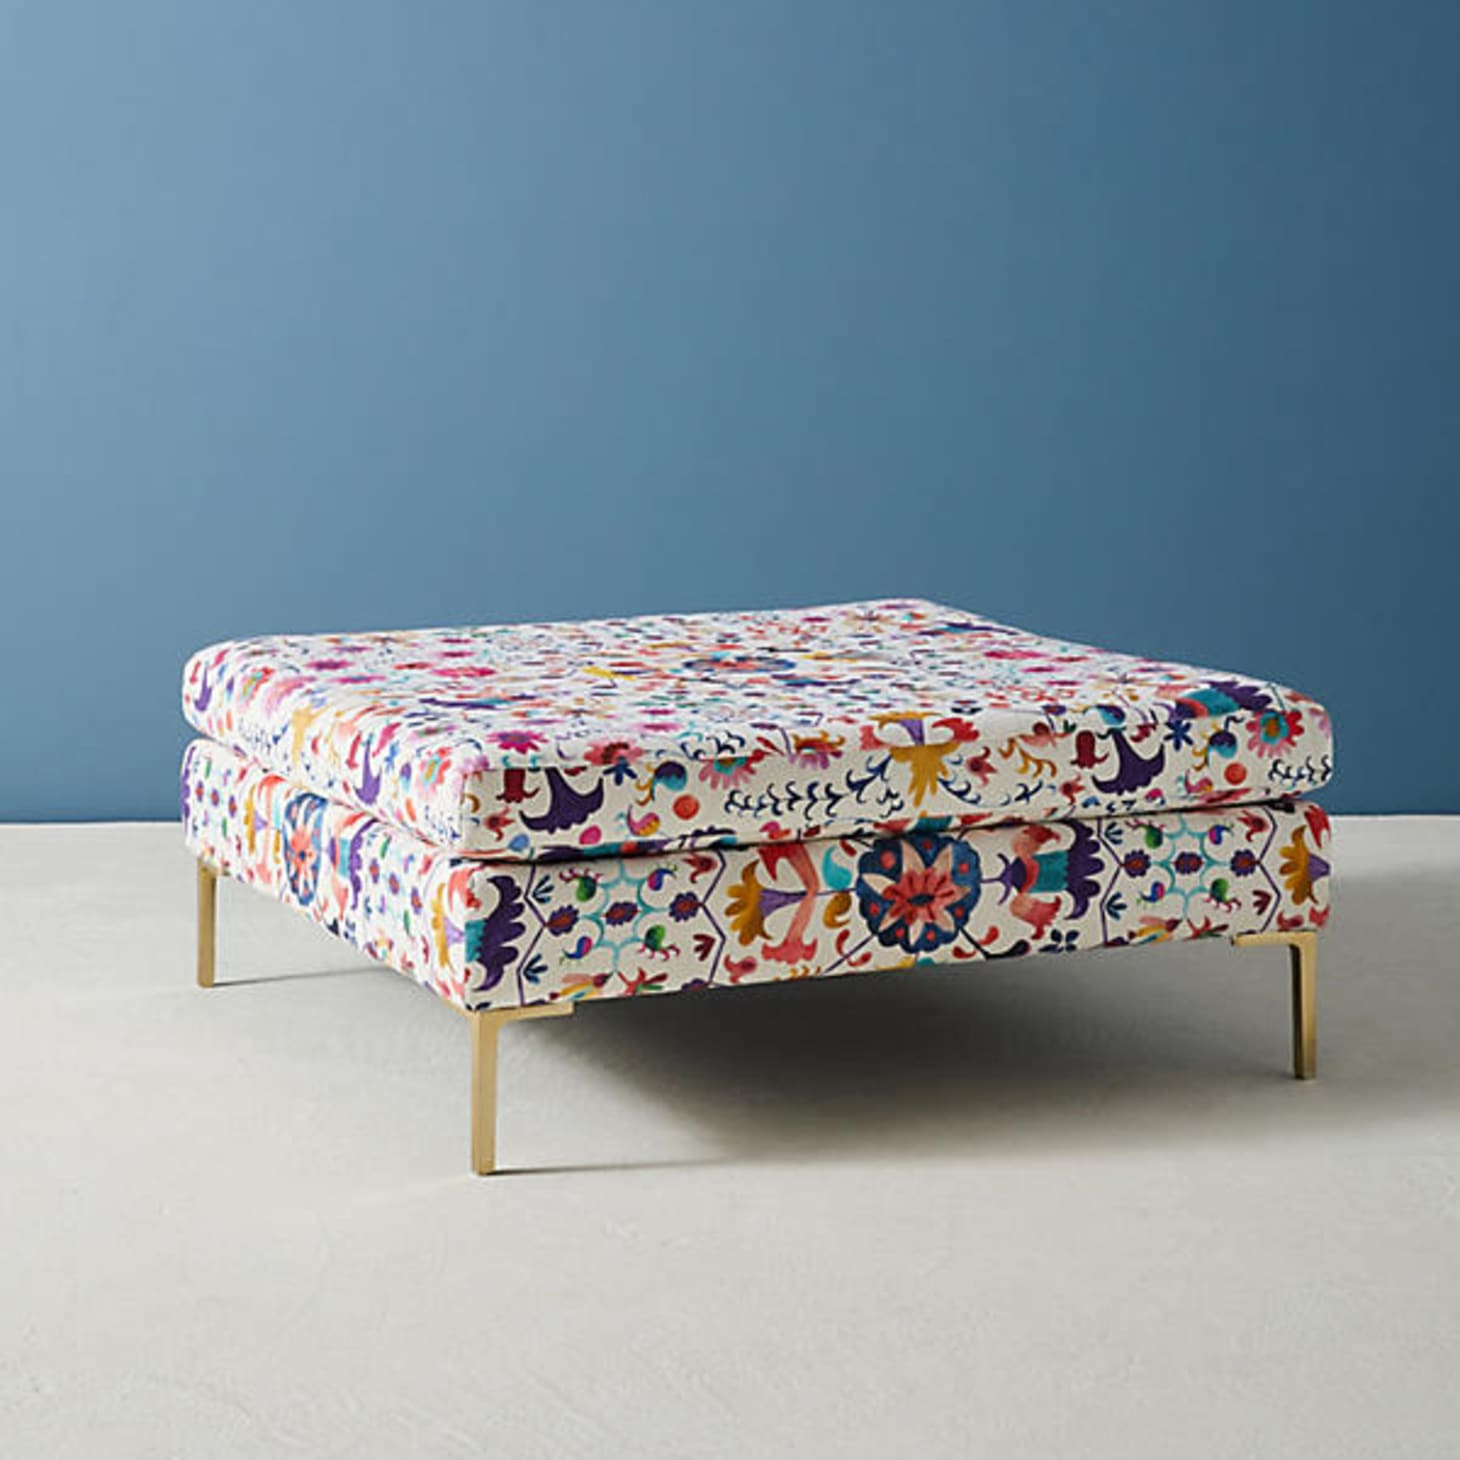 Double Duty 12 Ottoman Plus Coffee Table Hybrids Apartment Therapy